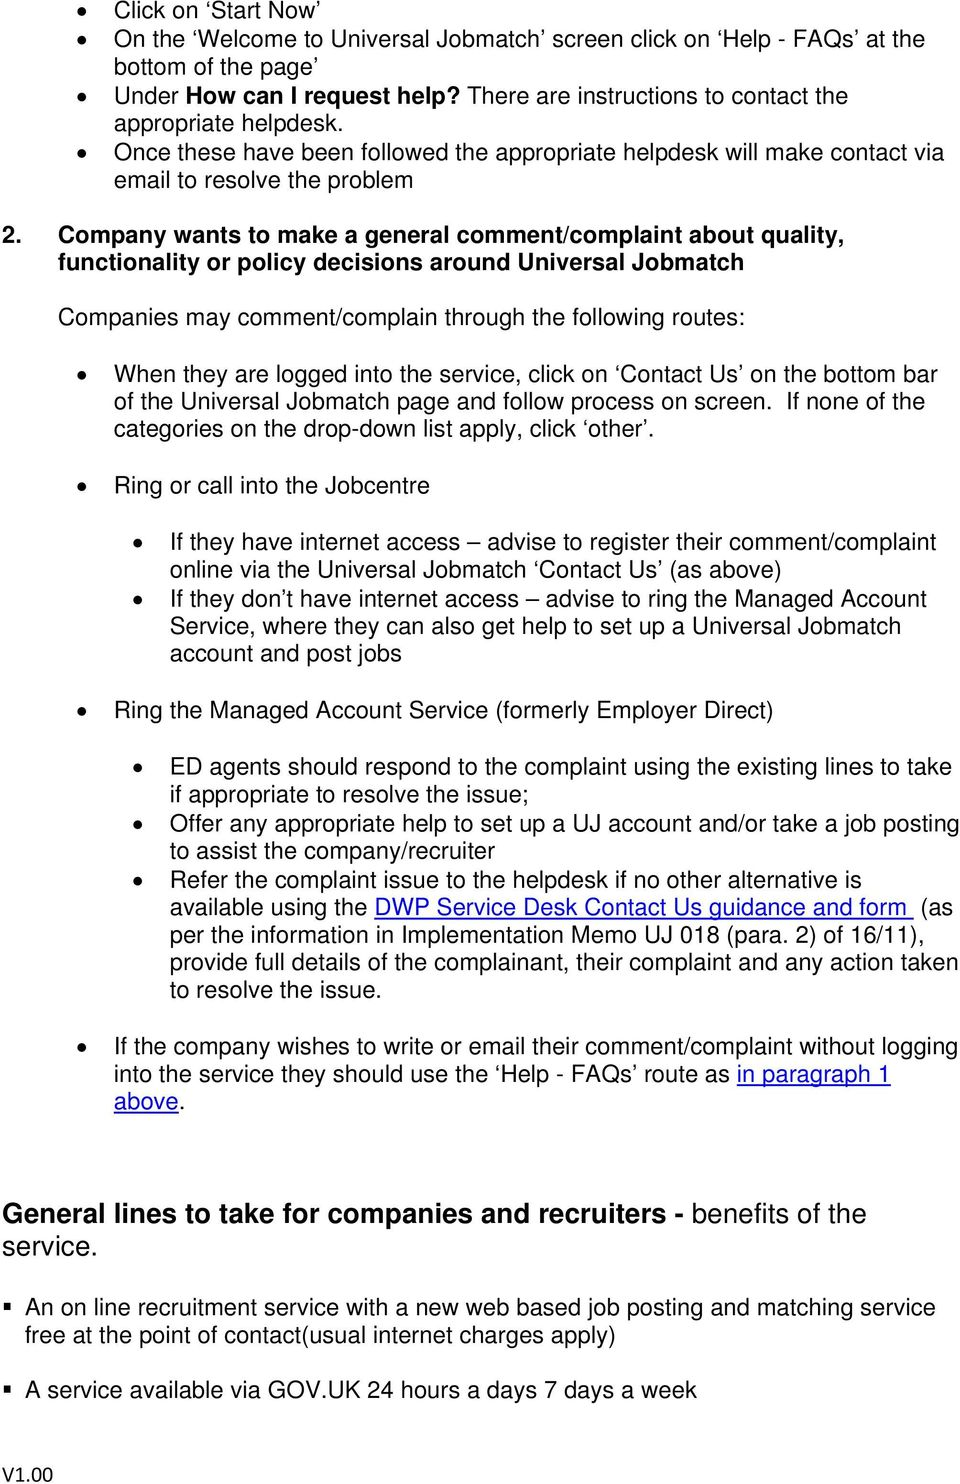 Universal jobmatch employer reference number